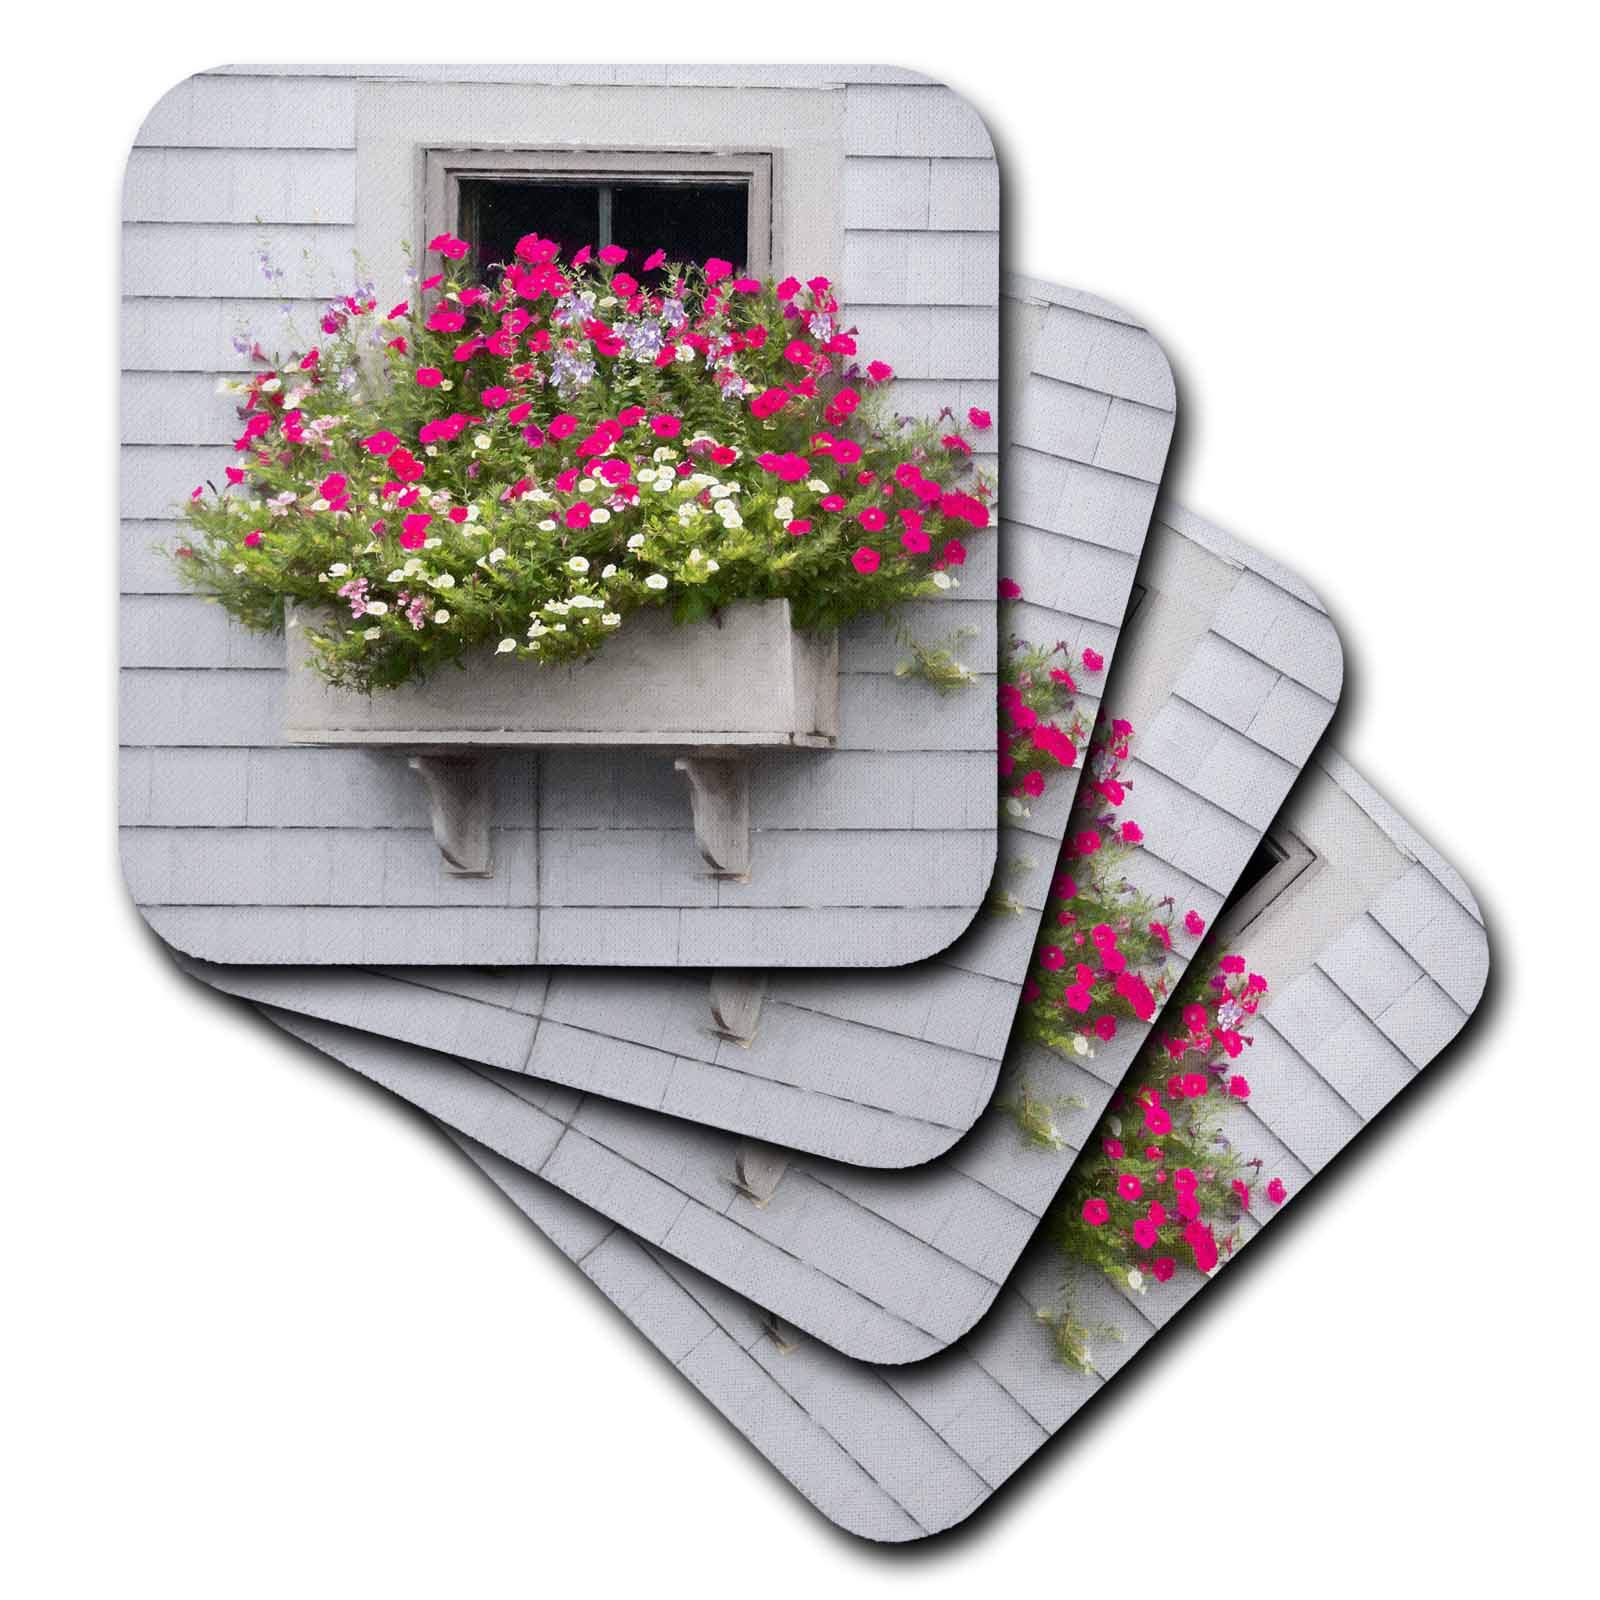 3dRose Roni Chastain Photography - Pink fowers by the window - set of 4 Coasters - Soft (cst_295334_1)